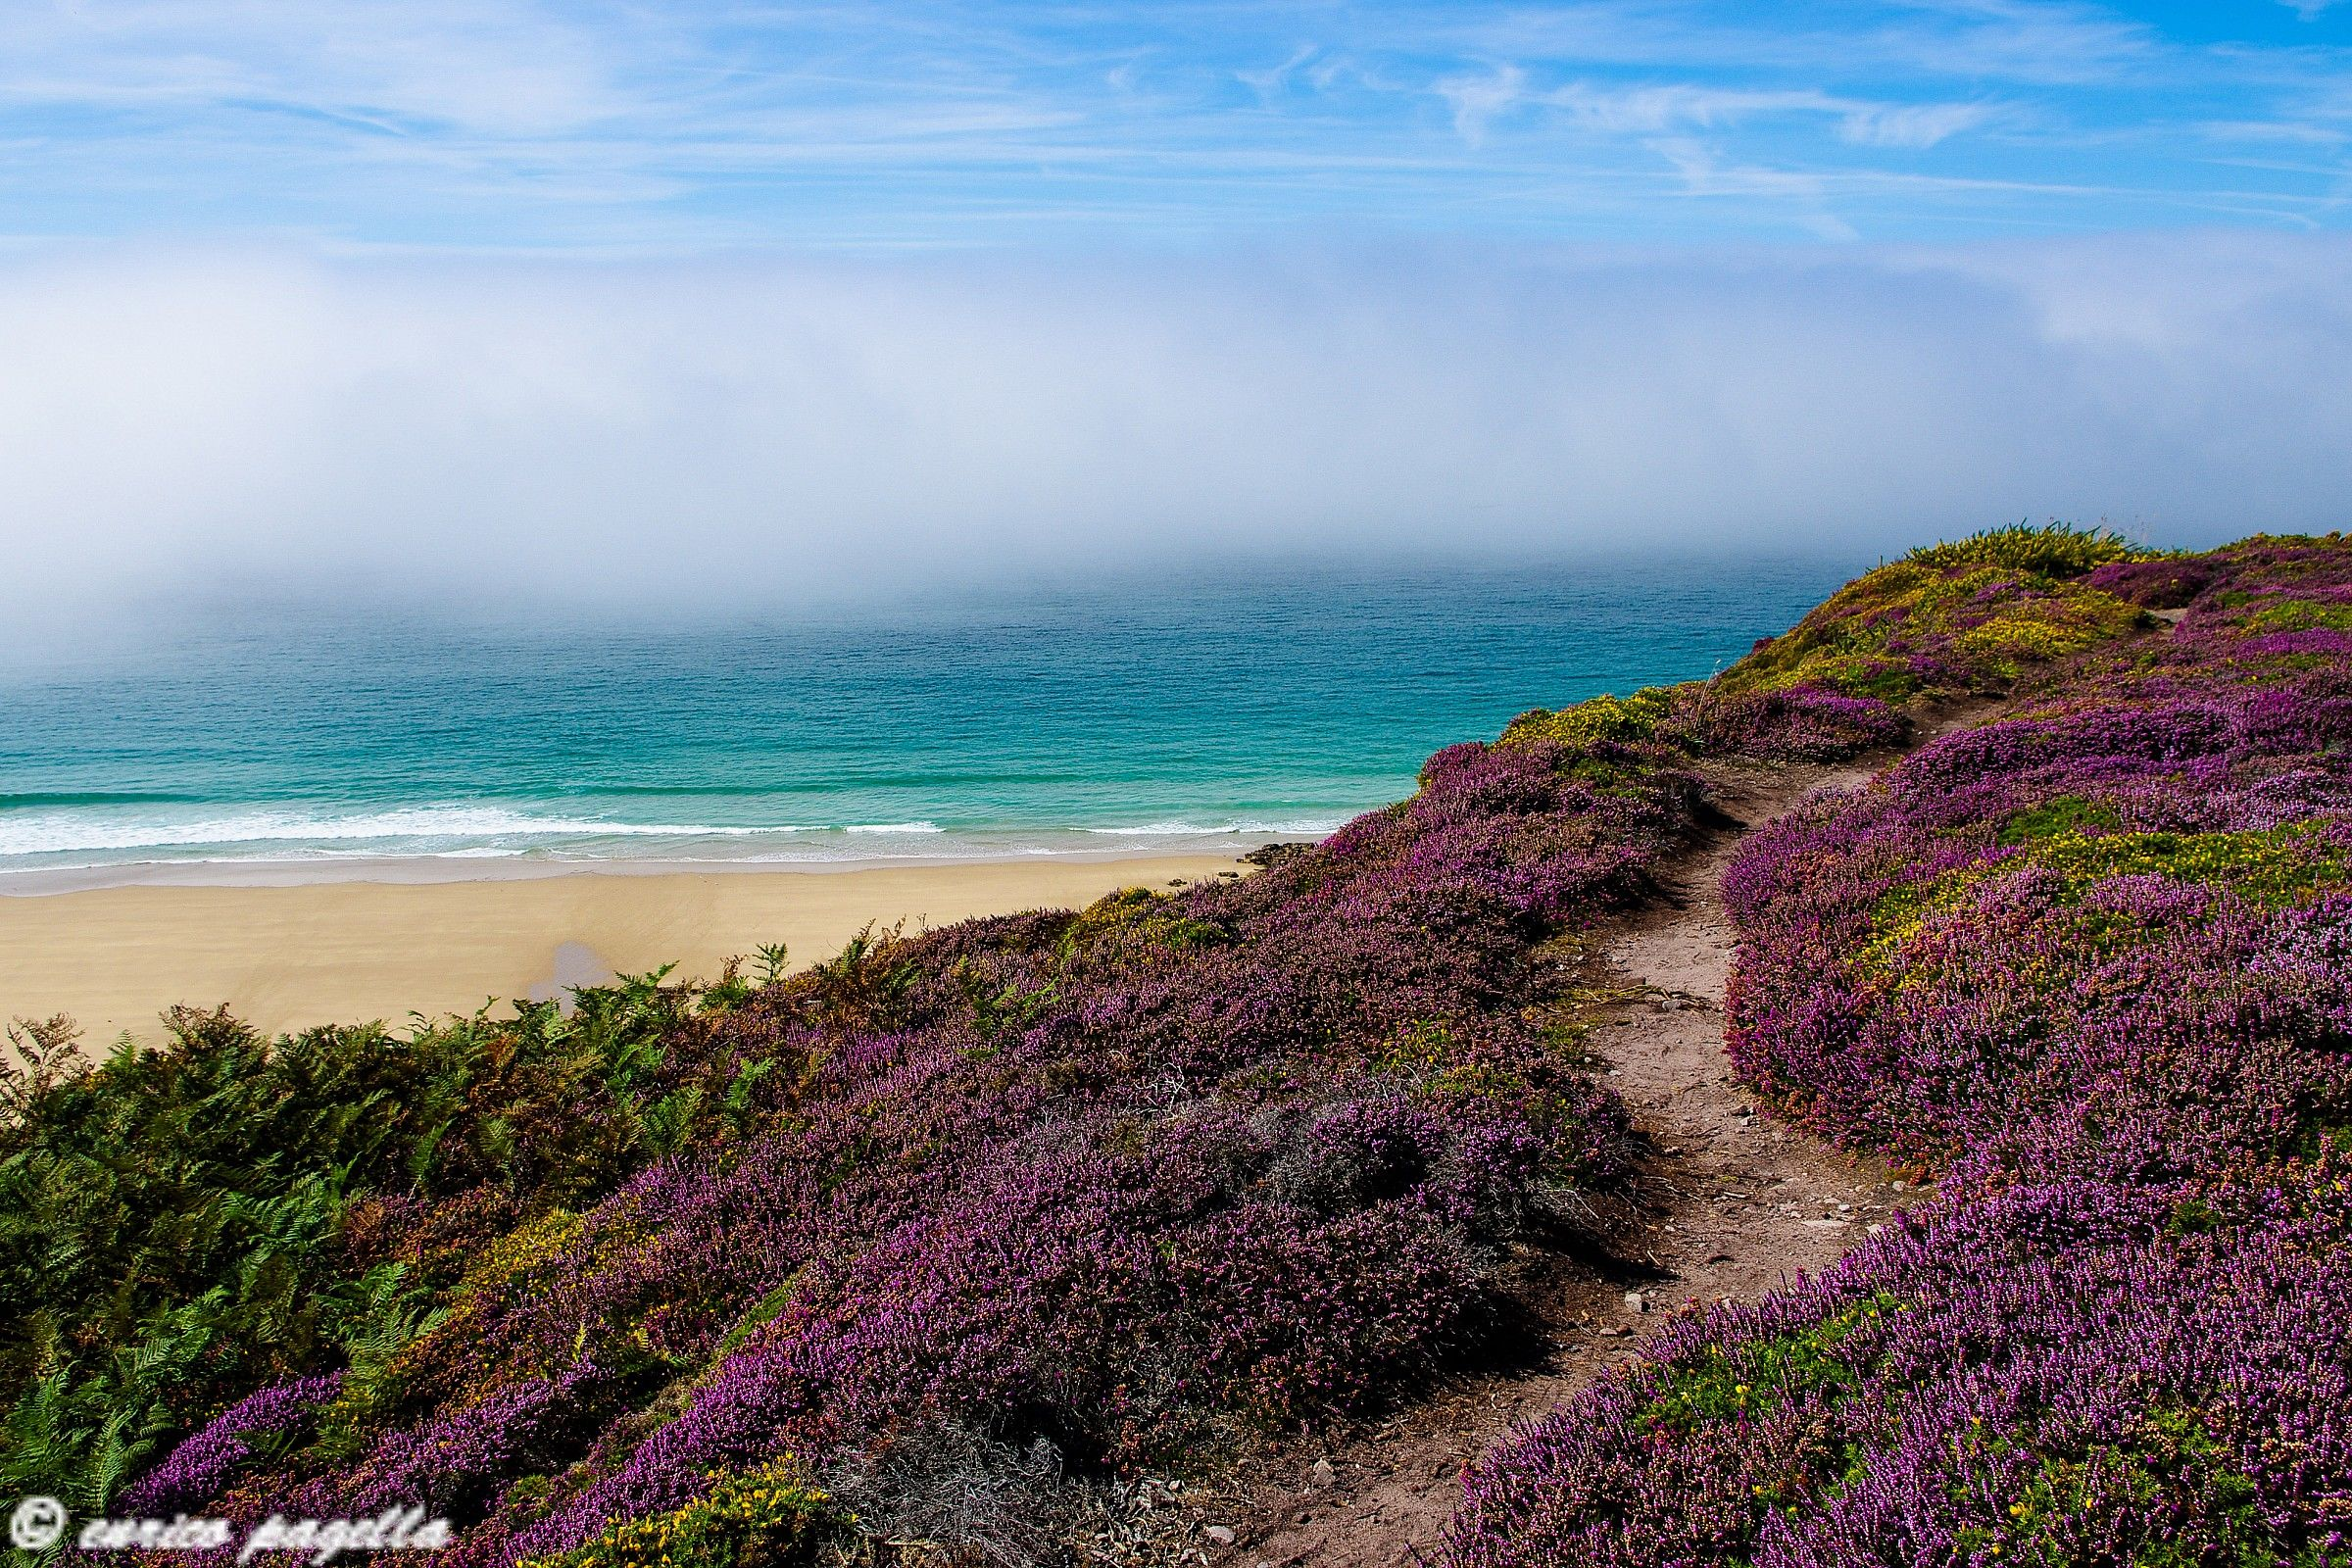 The spectacular colors of the Breton coast...